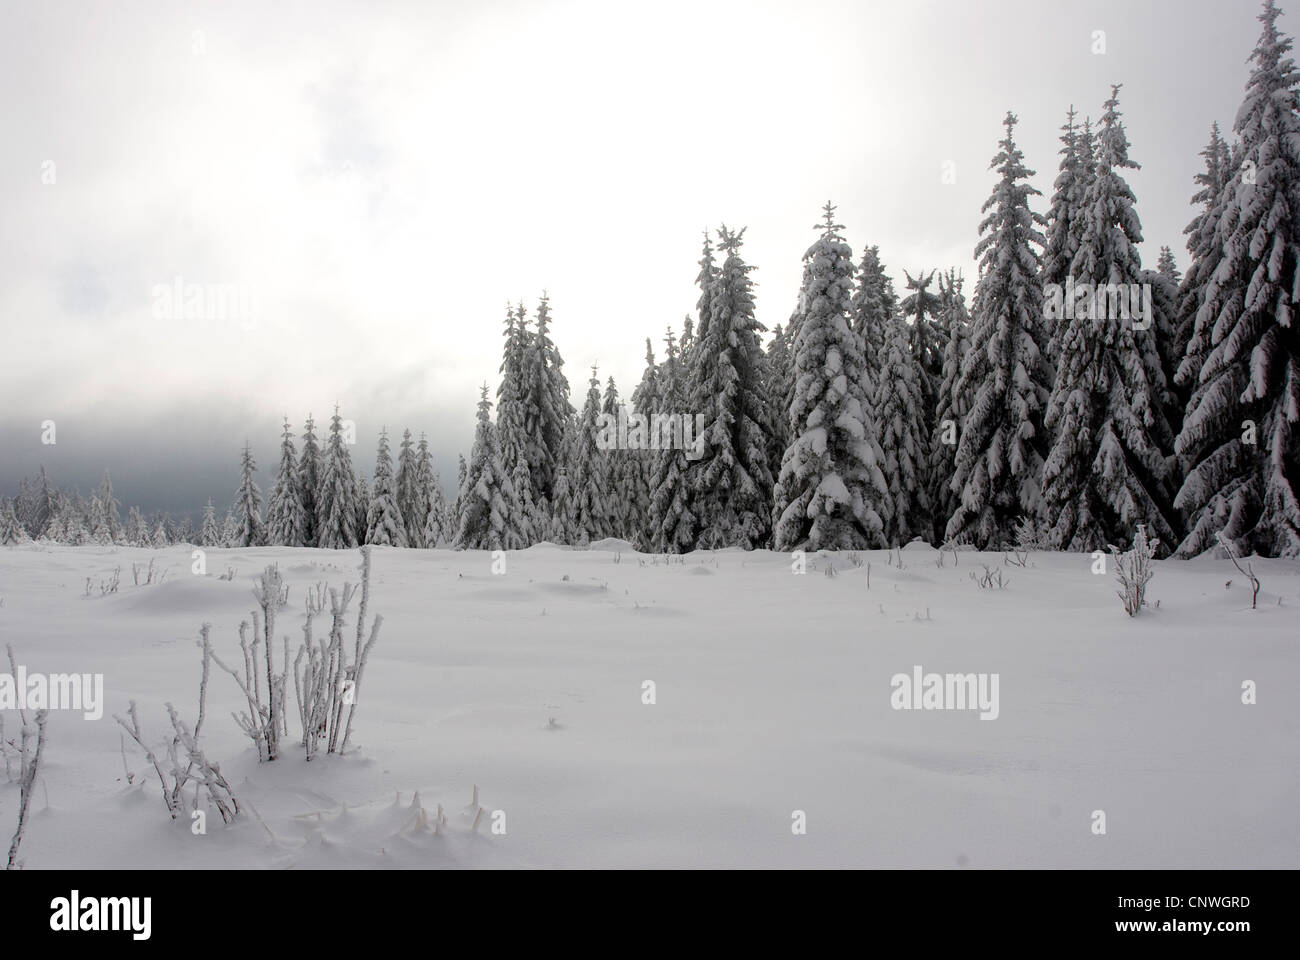 winter landscape with spruces in the Black Forest, Germany, Baden-Wuerttemberg, Black Forest - Stock Image